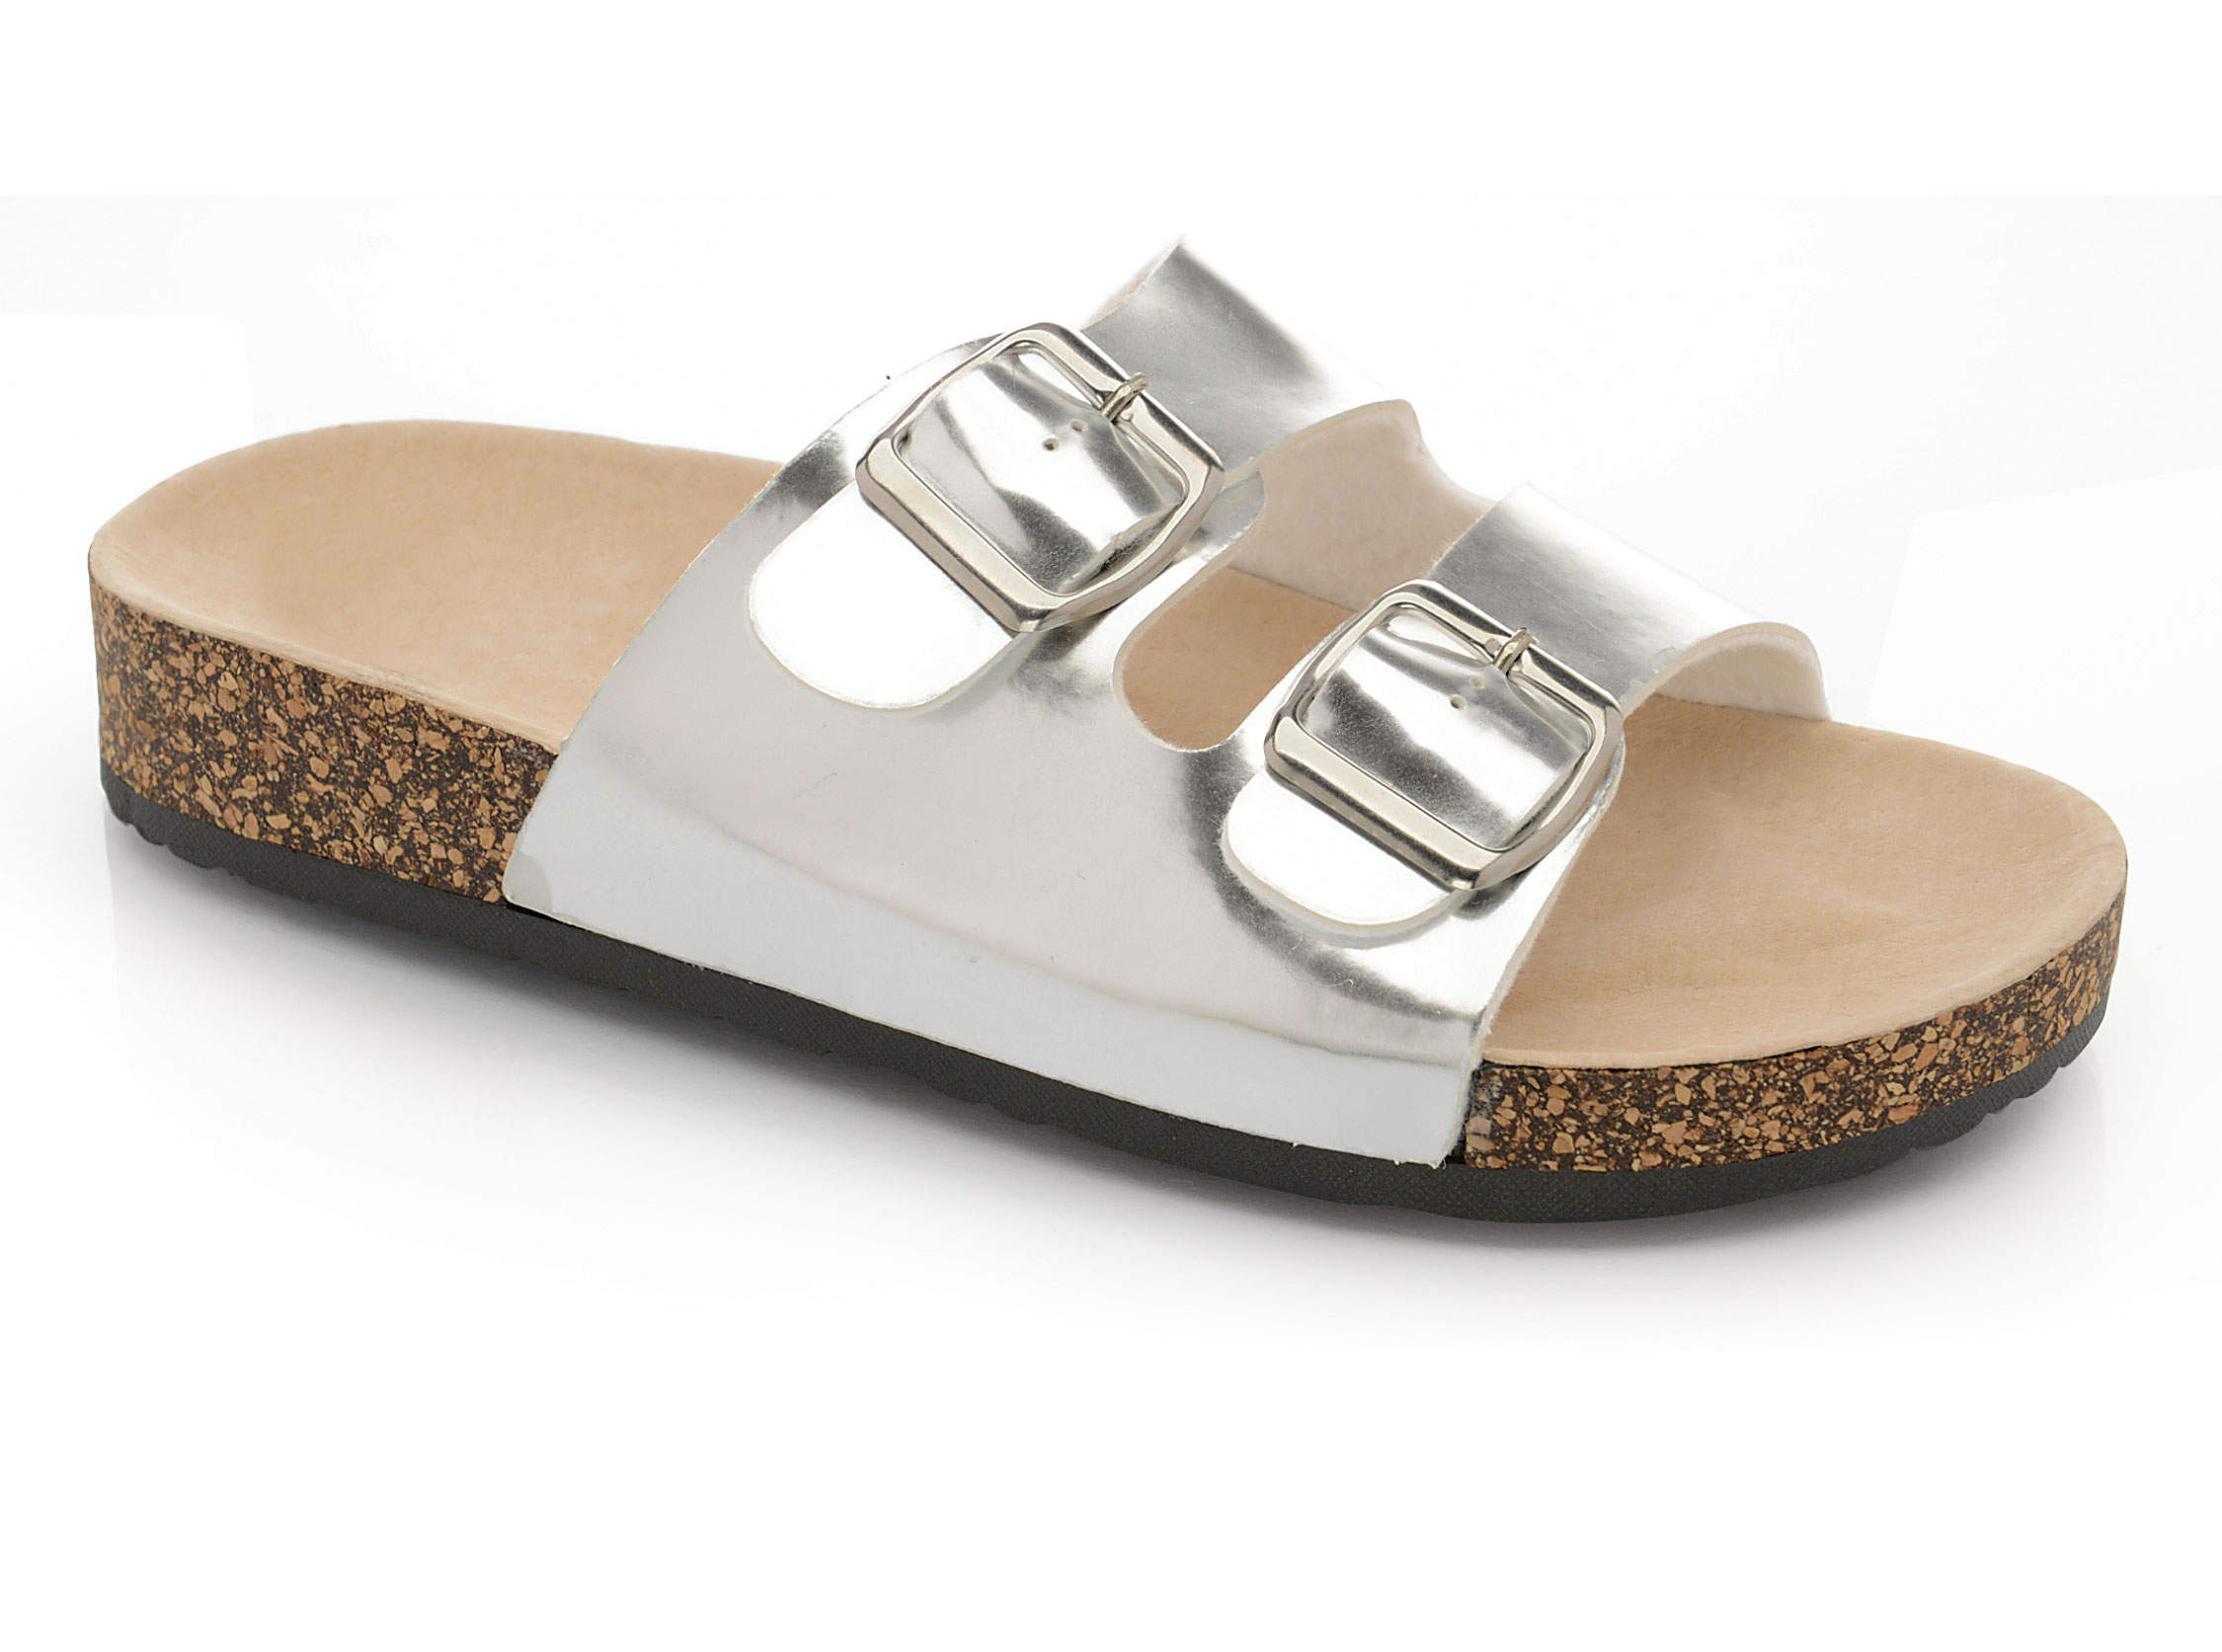 timeless design pretty cool first rate Details about Ladies Womens Flat Sandals Summer Comfort Cork Sole Mules  Slip On Beach Shoes